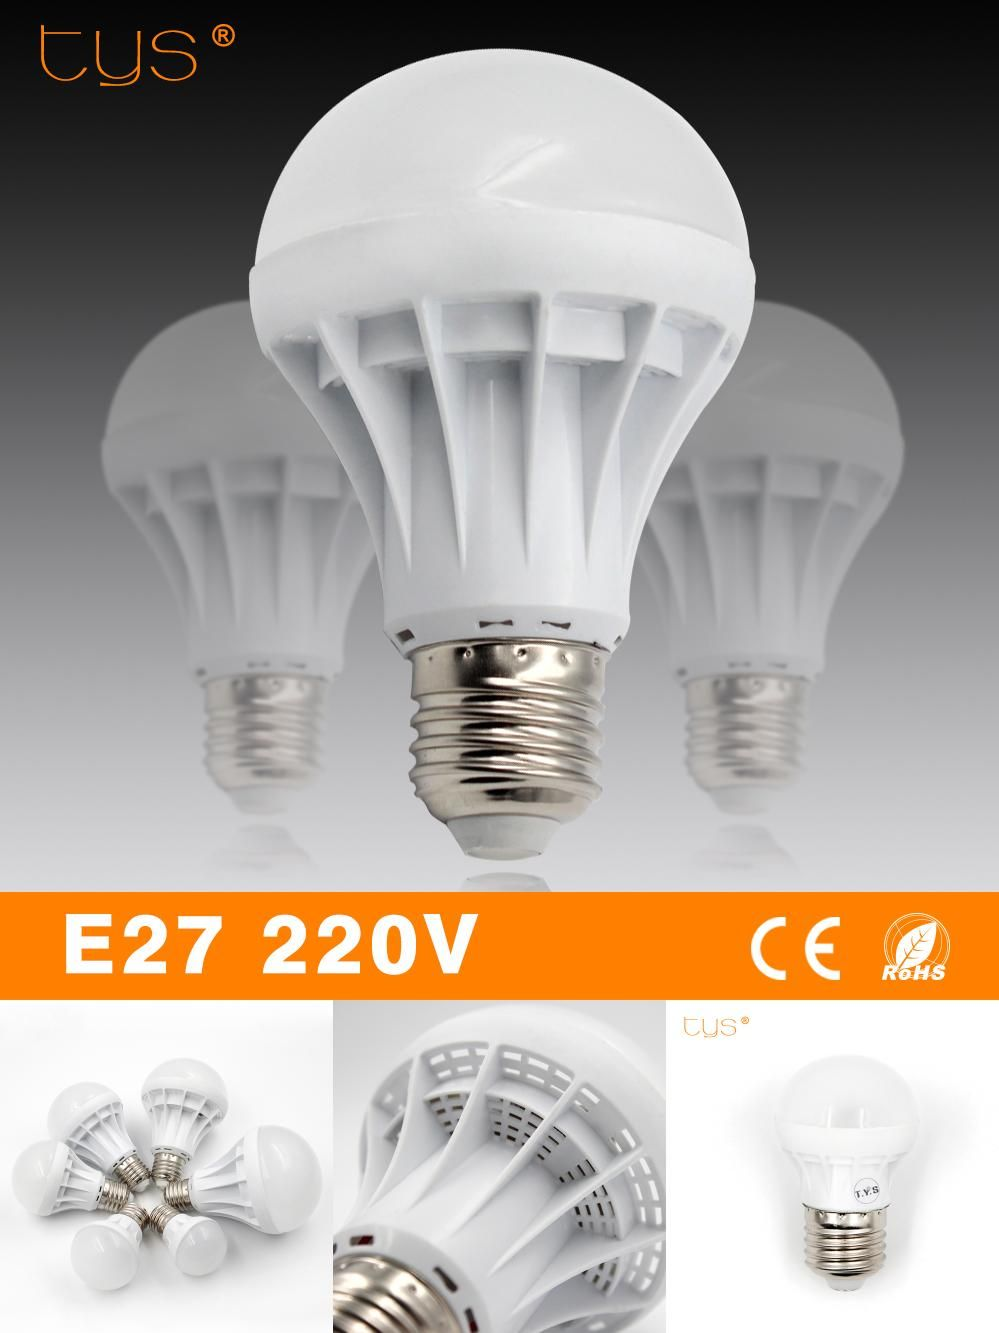 Lamparas Led 3w Visit To Buy Lampada Led Lamp E27 220v Smd 5730 Bombillas Led